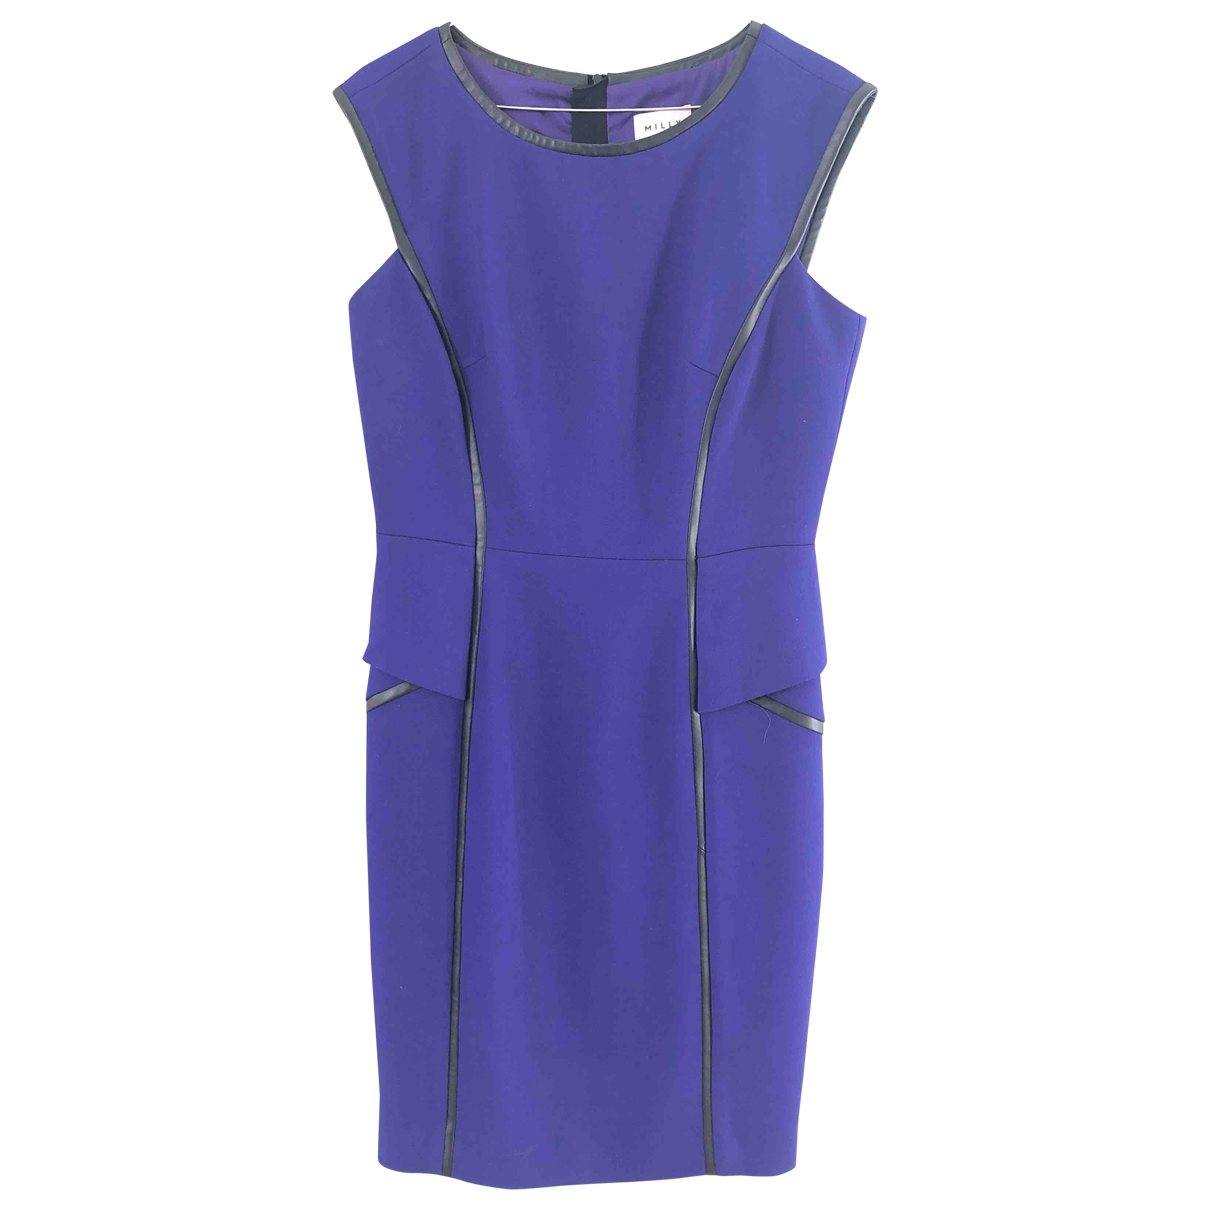 Milly \N Kleid in  Lila Polyester